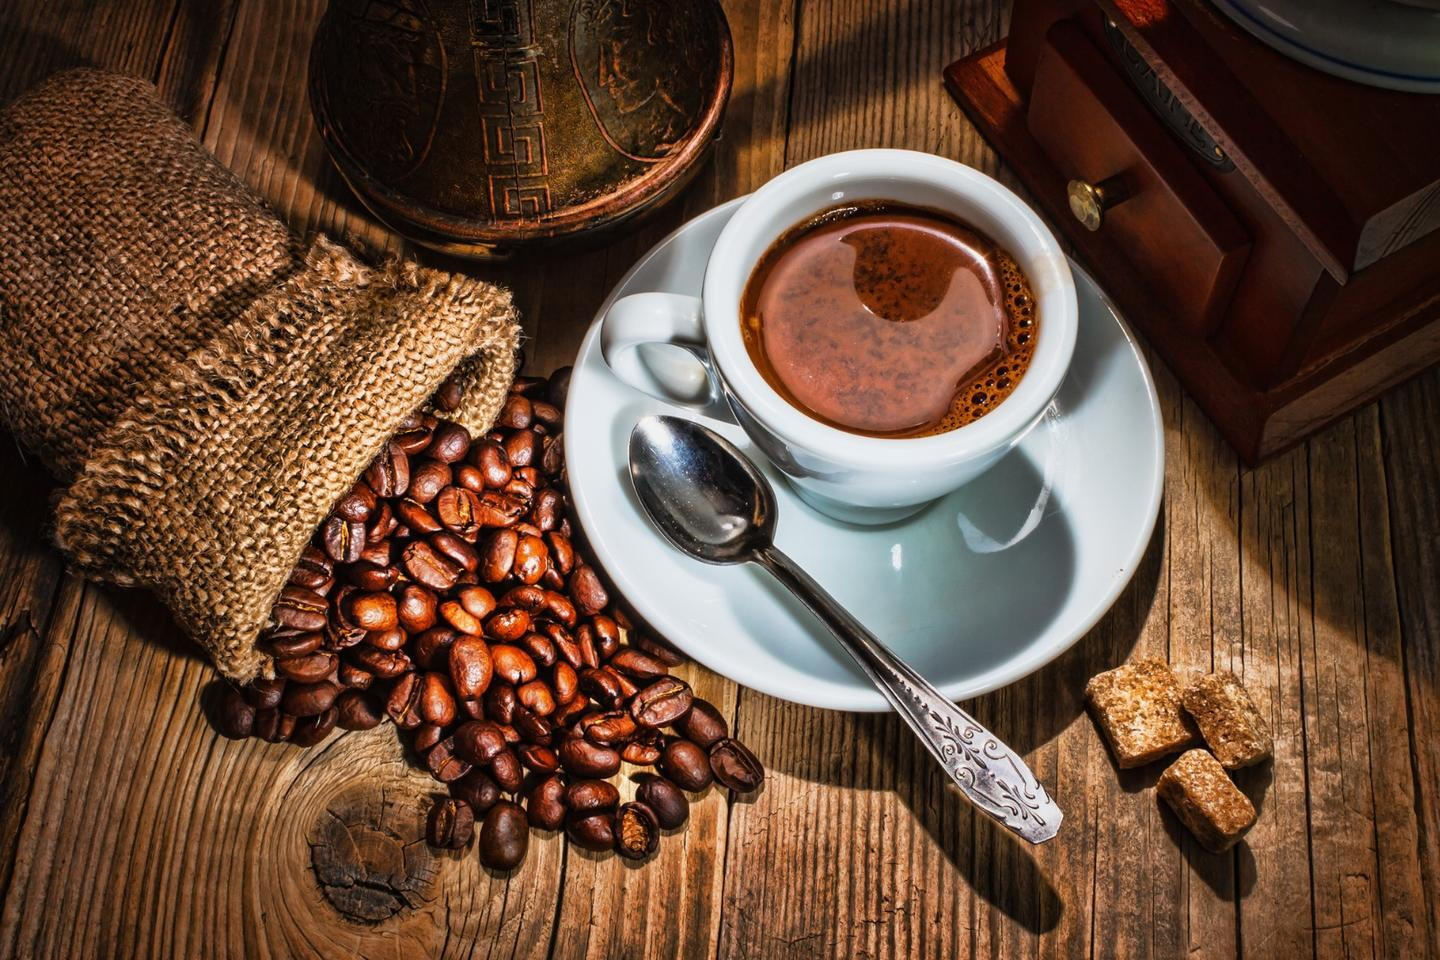 Two compounds foundin coffee may slow the growth of prostate cancers